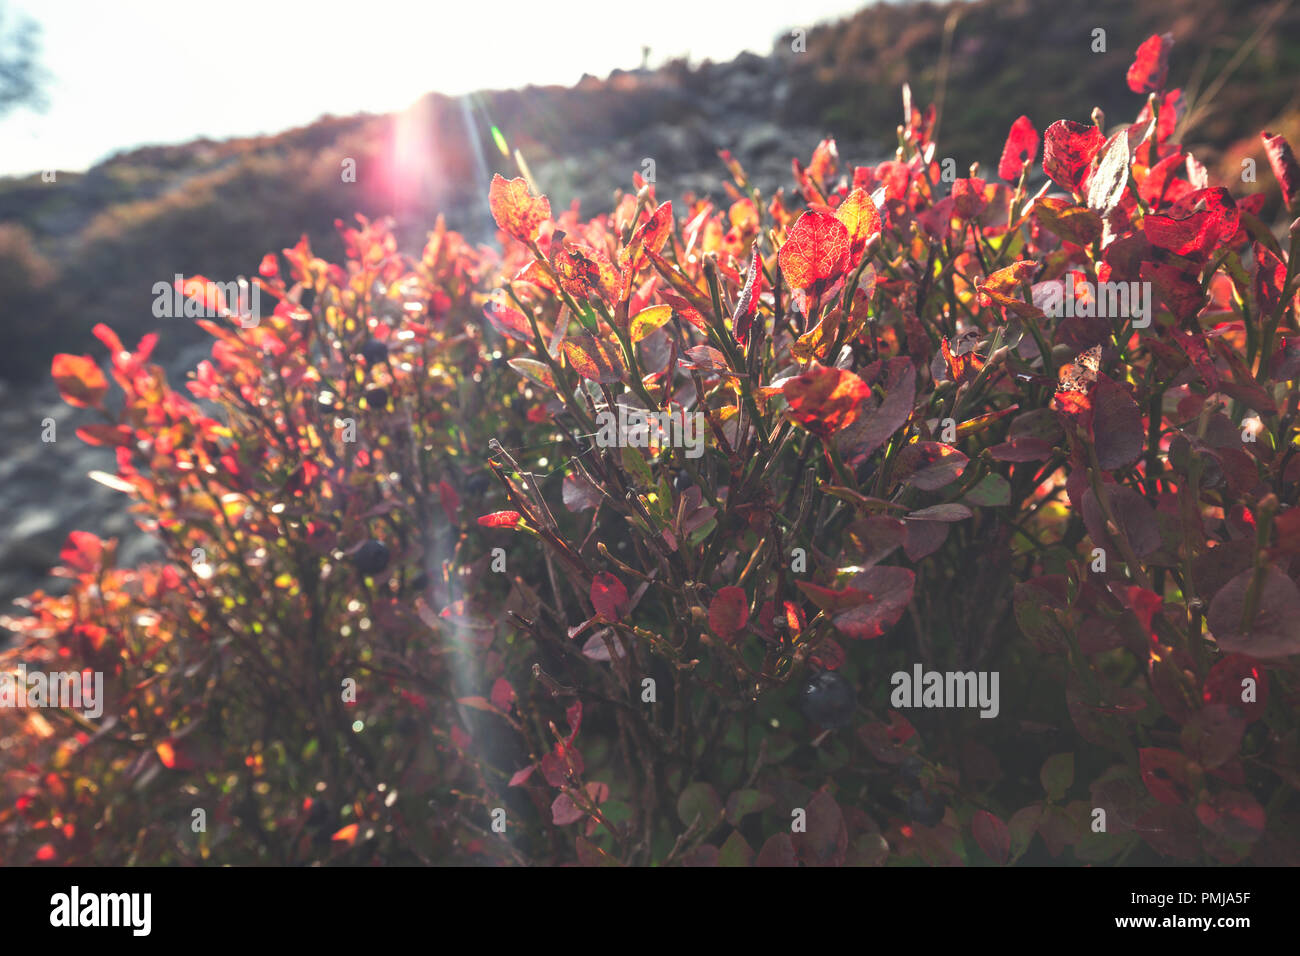 Wild Blueberry bush with ripe berries and red leaves on upland meadow in United Kingdom - Stock Image